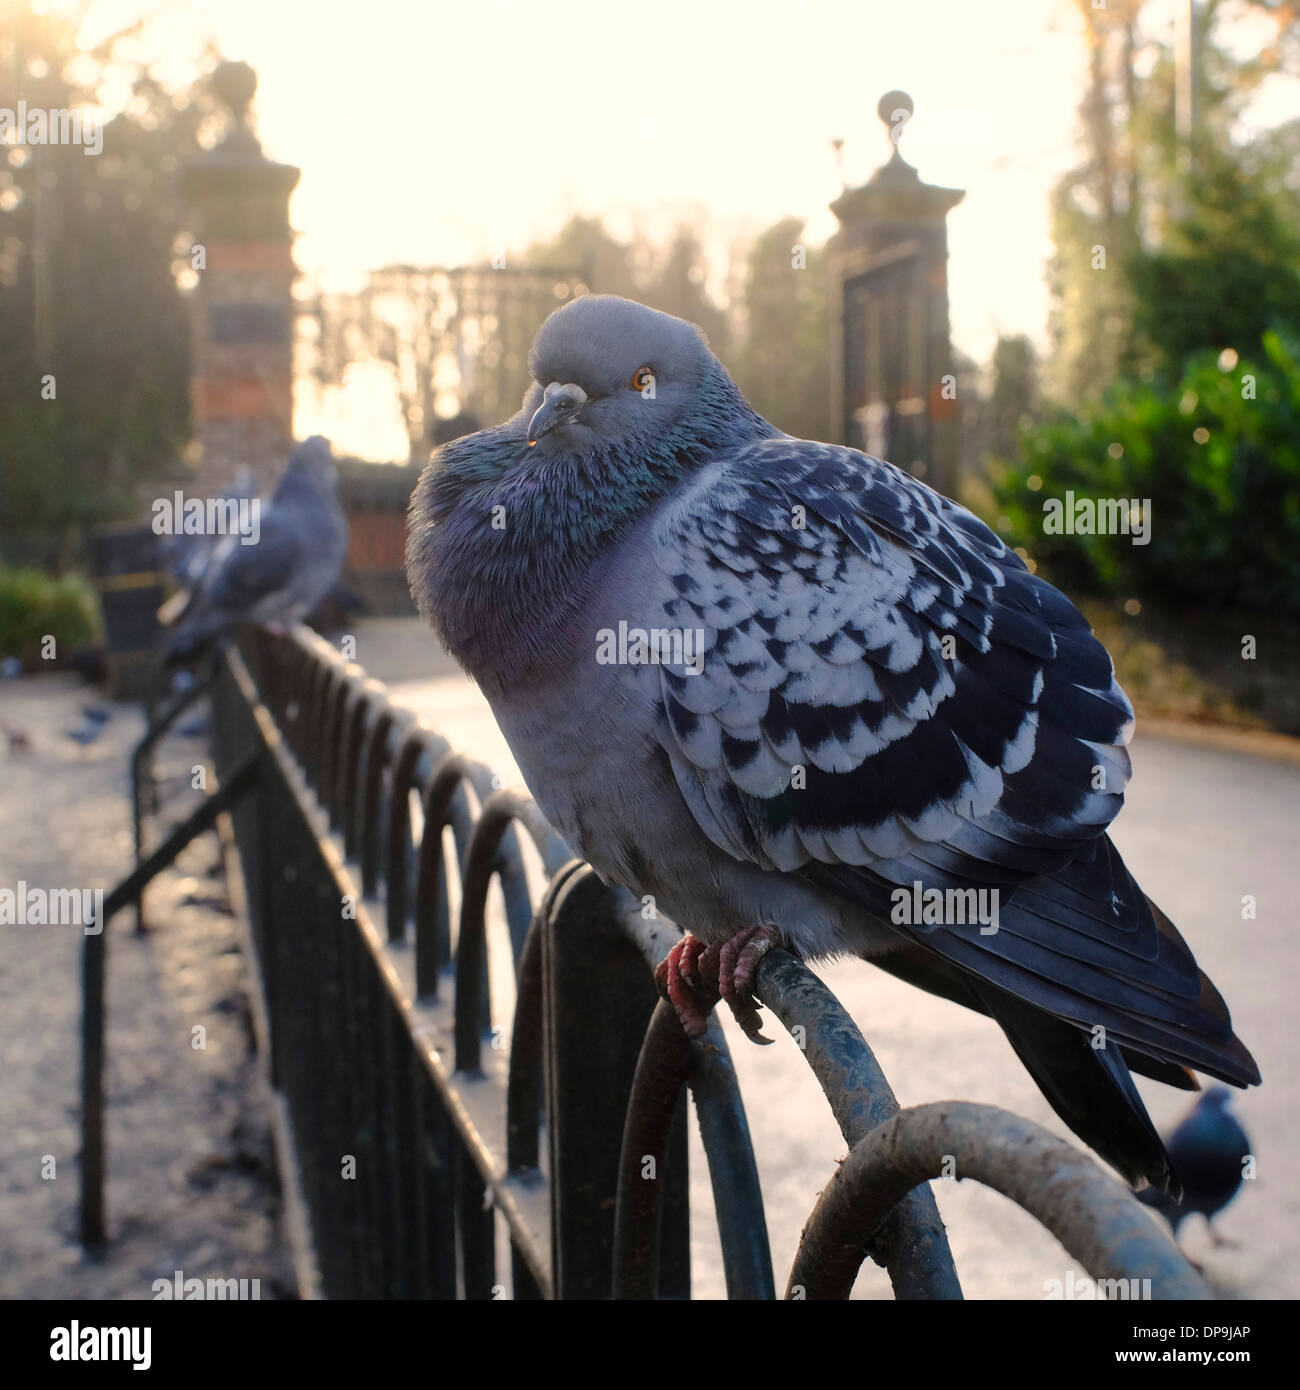 pigeon on fence looking unwell with swollen throat and runny nose possibly with bird flu - Stock Image